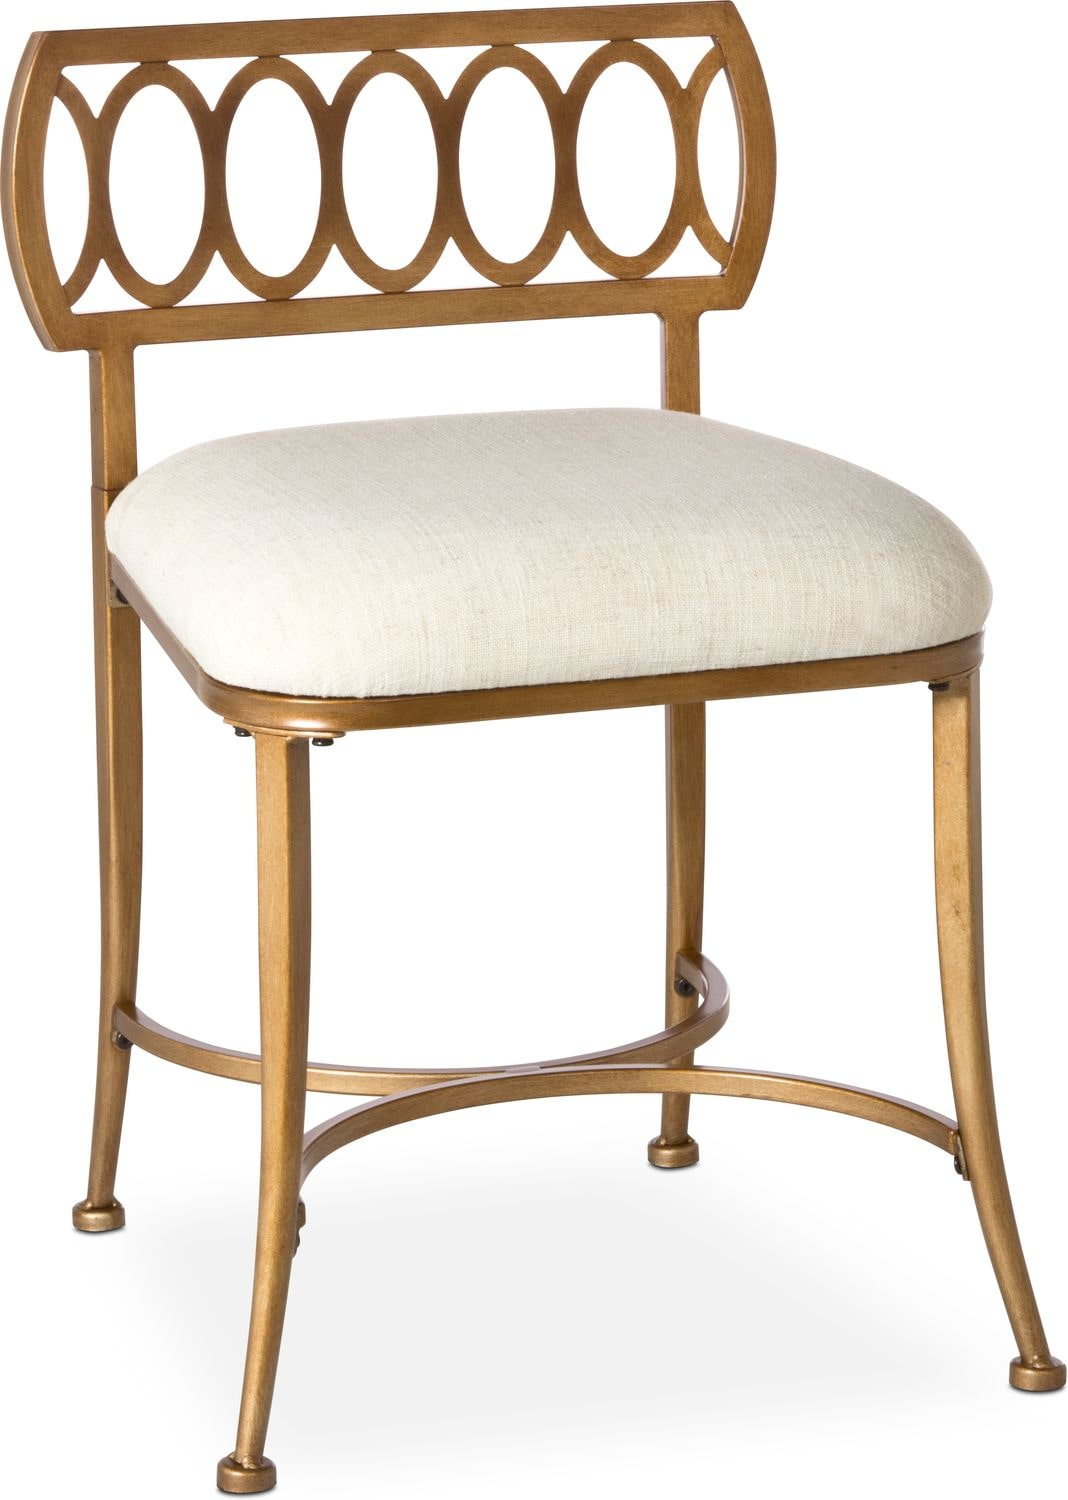 Gold Vanity Chair Jefferson Vanity Stool Gold American Signature Furniture